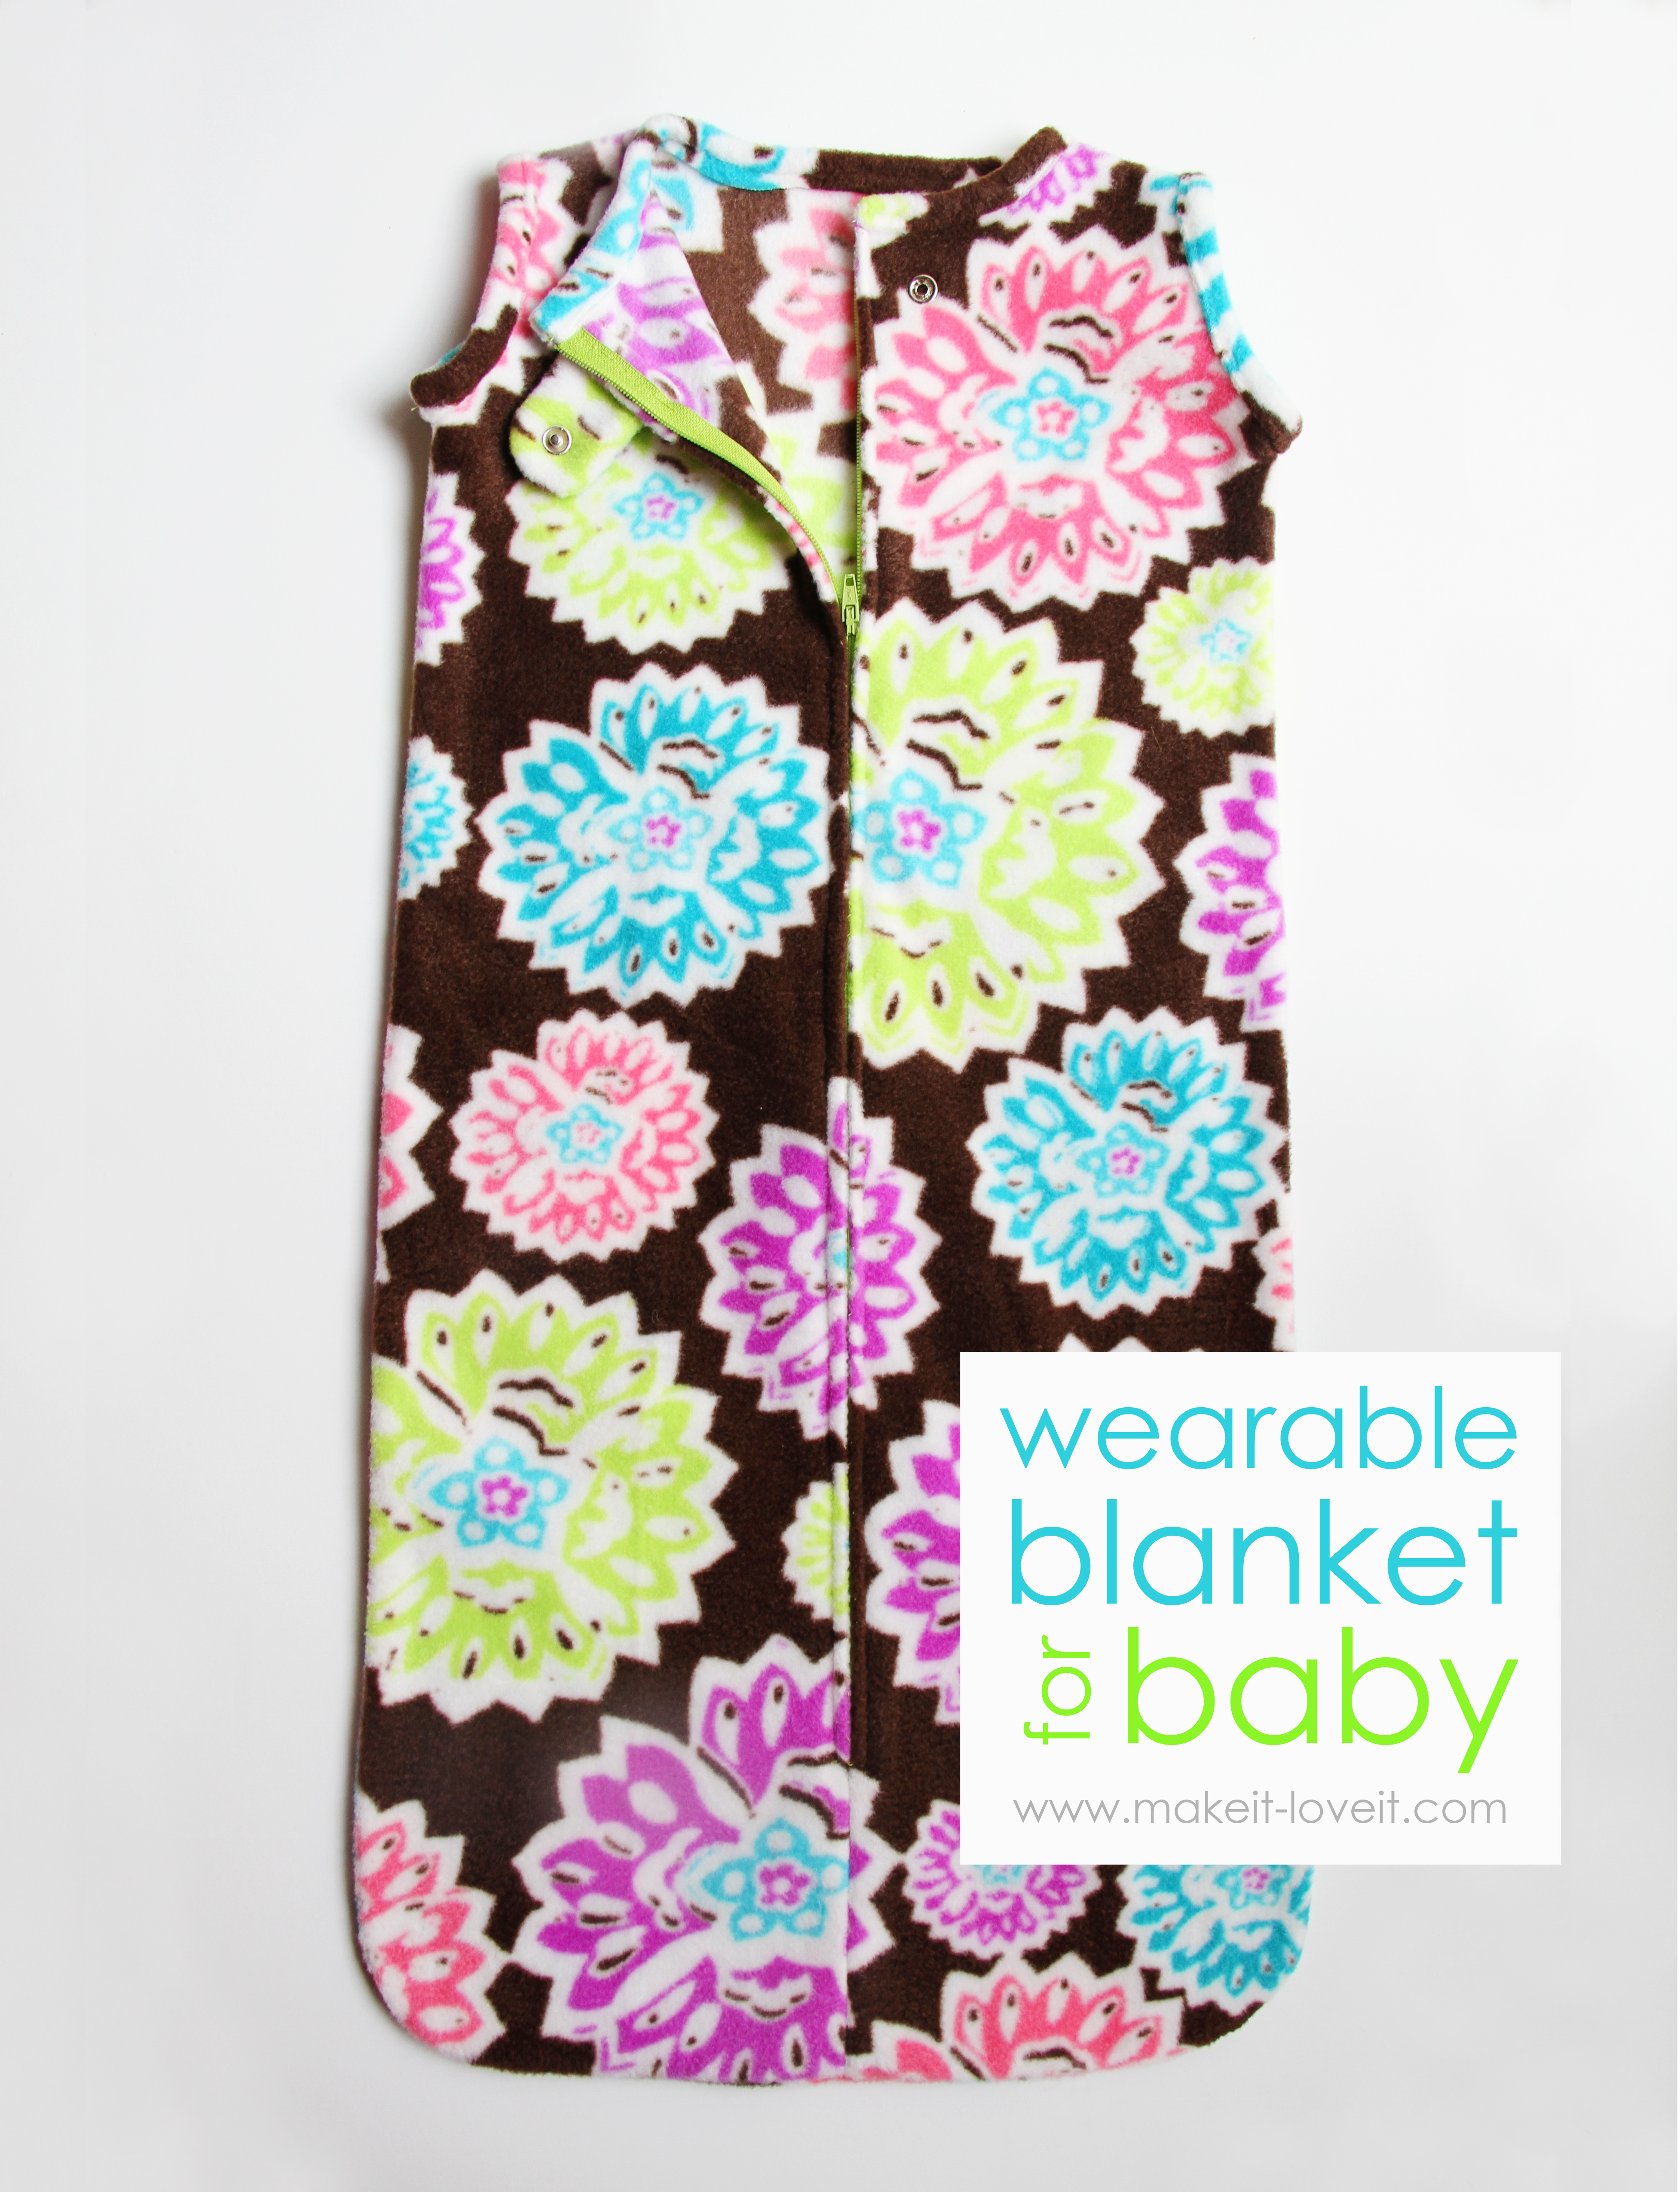 wearable blanket for baby